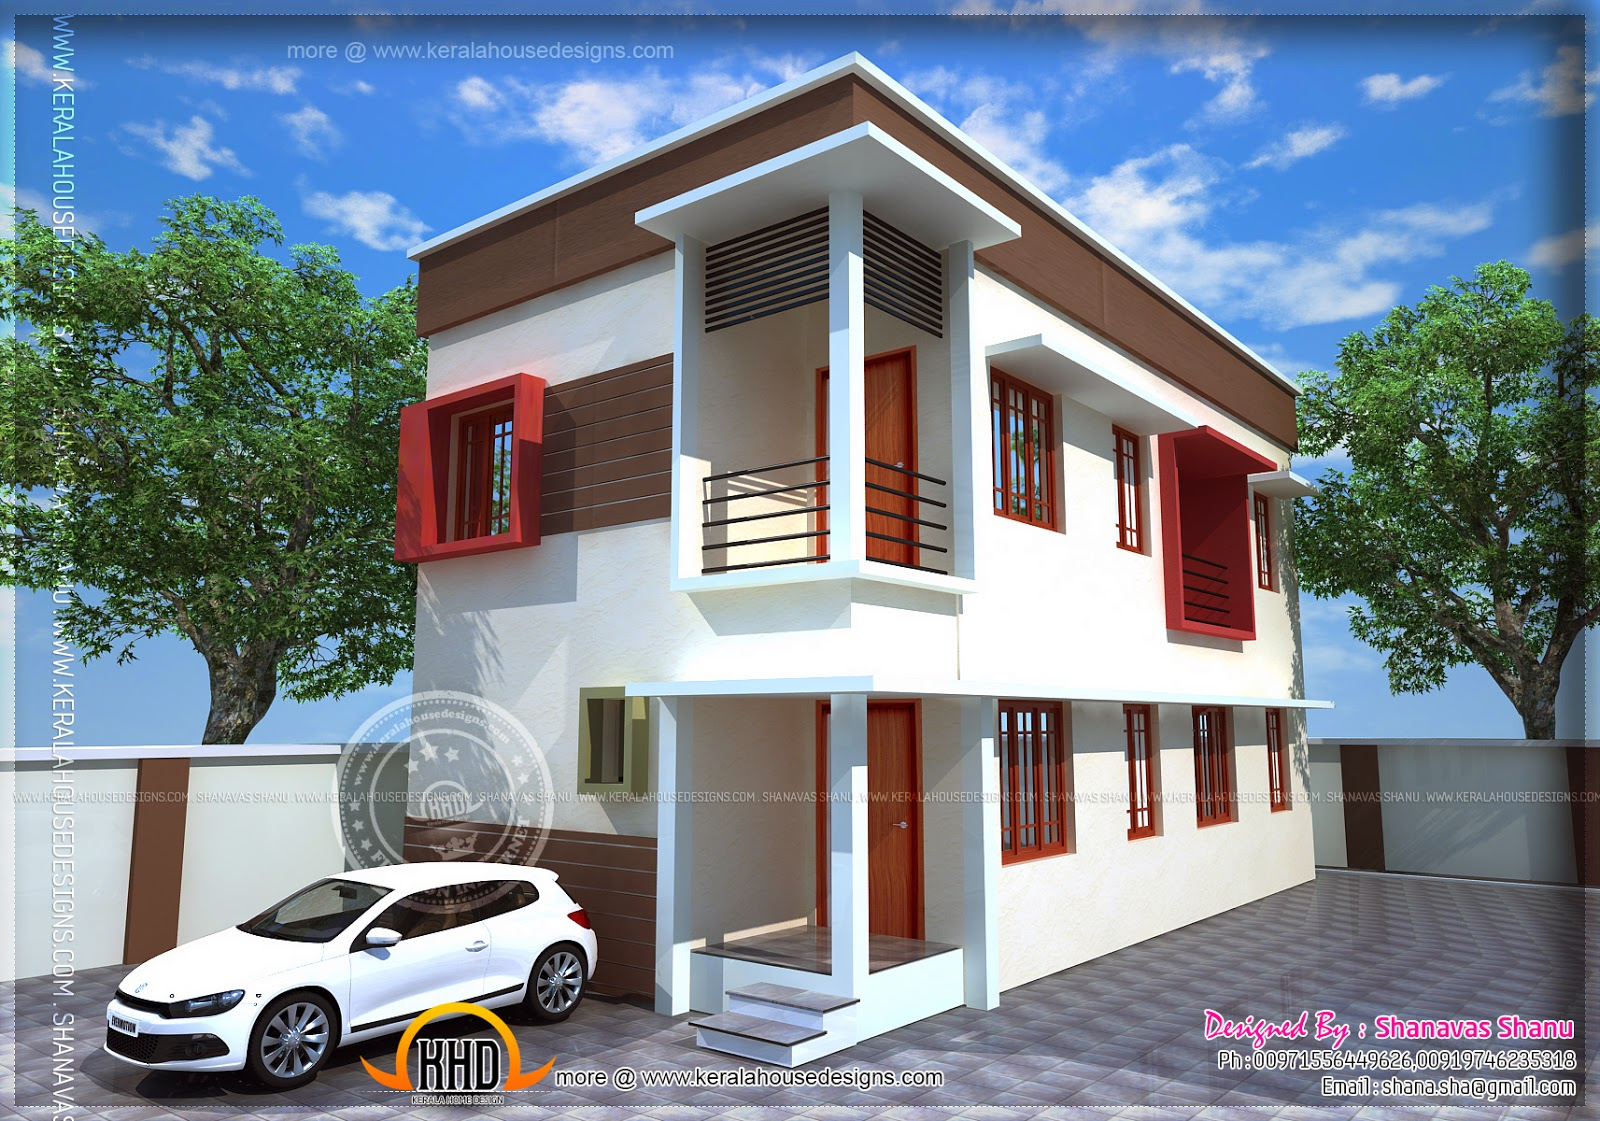 small plot villa in cents of land kerala home design and floor plans